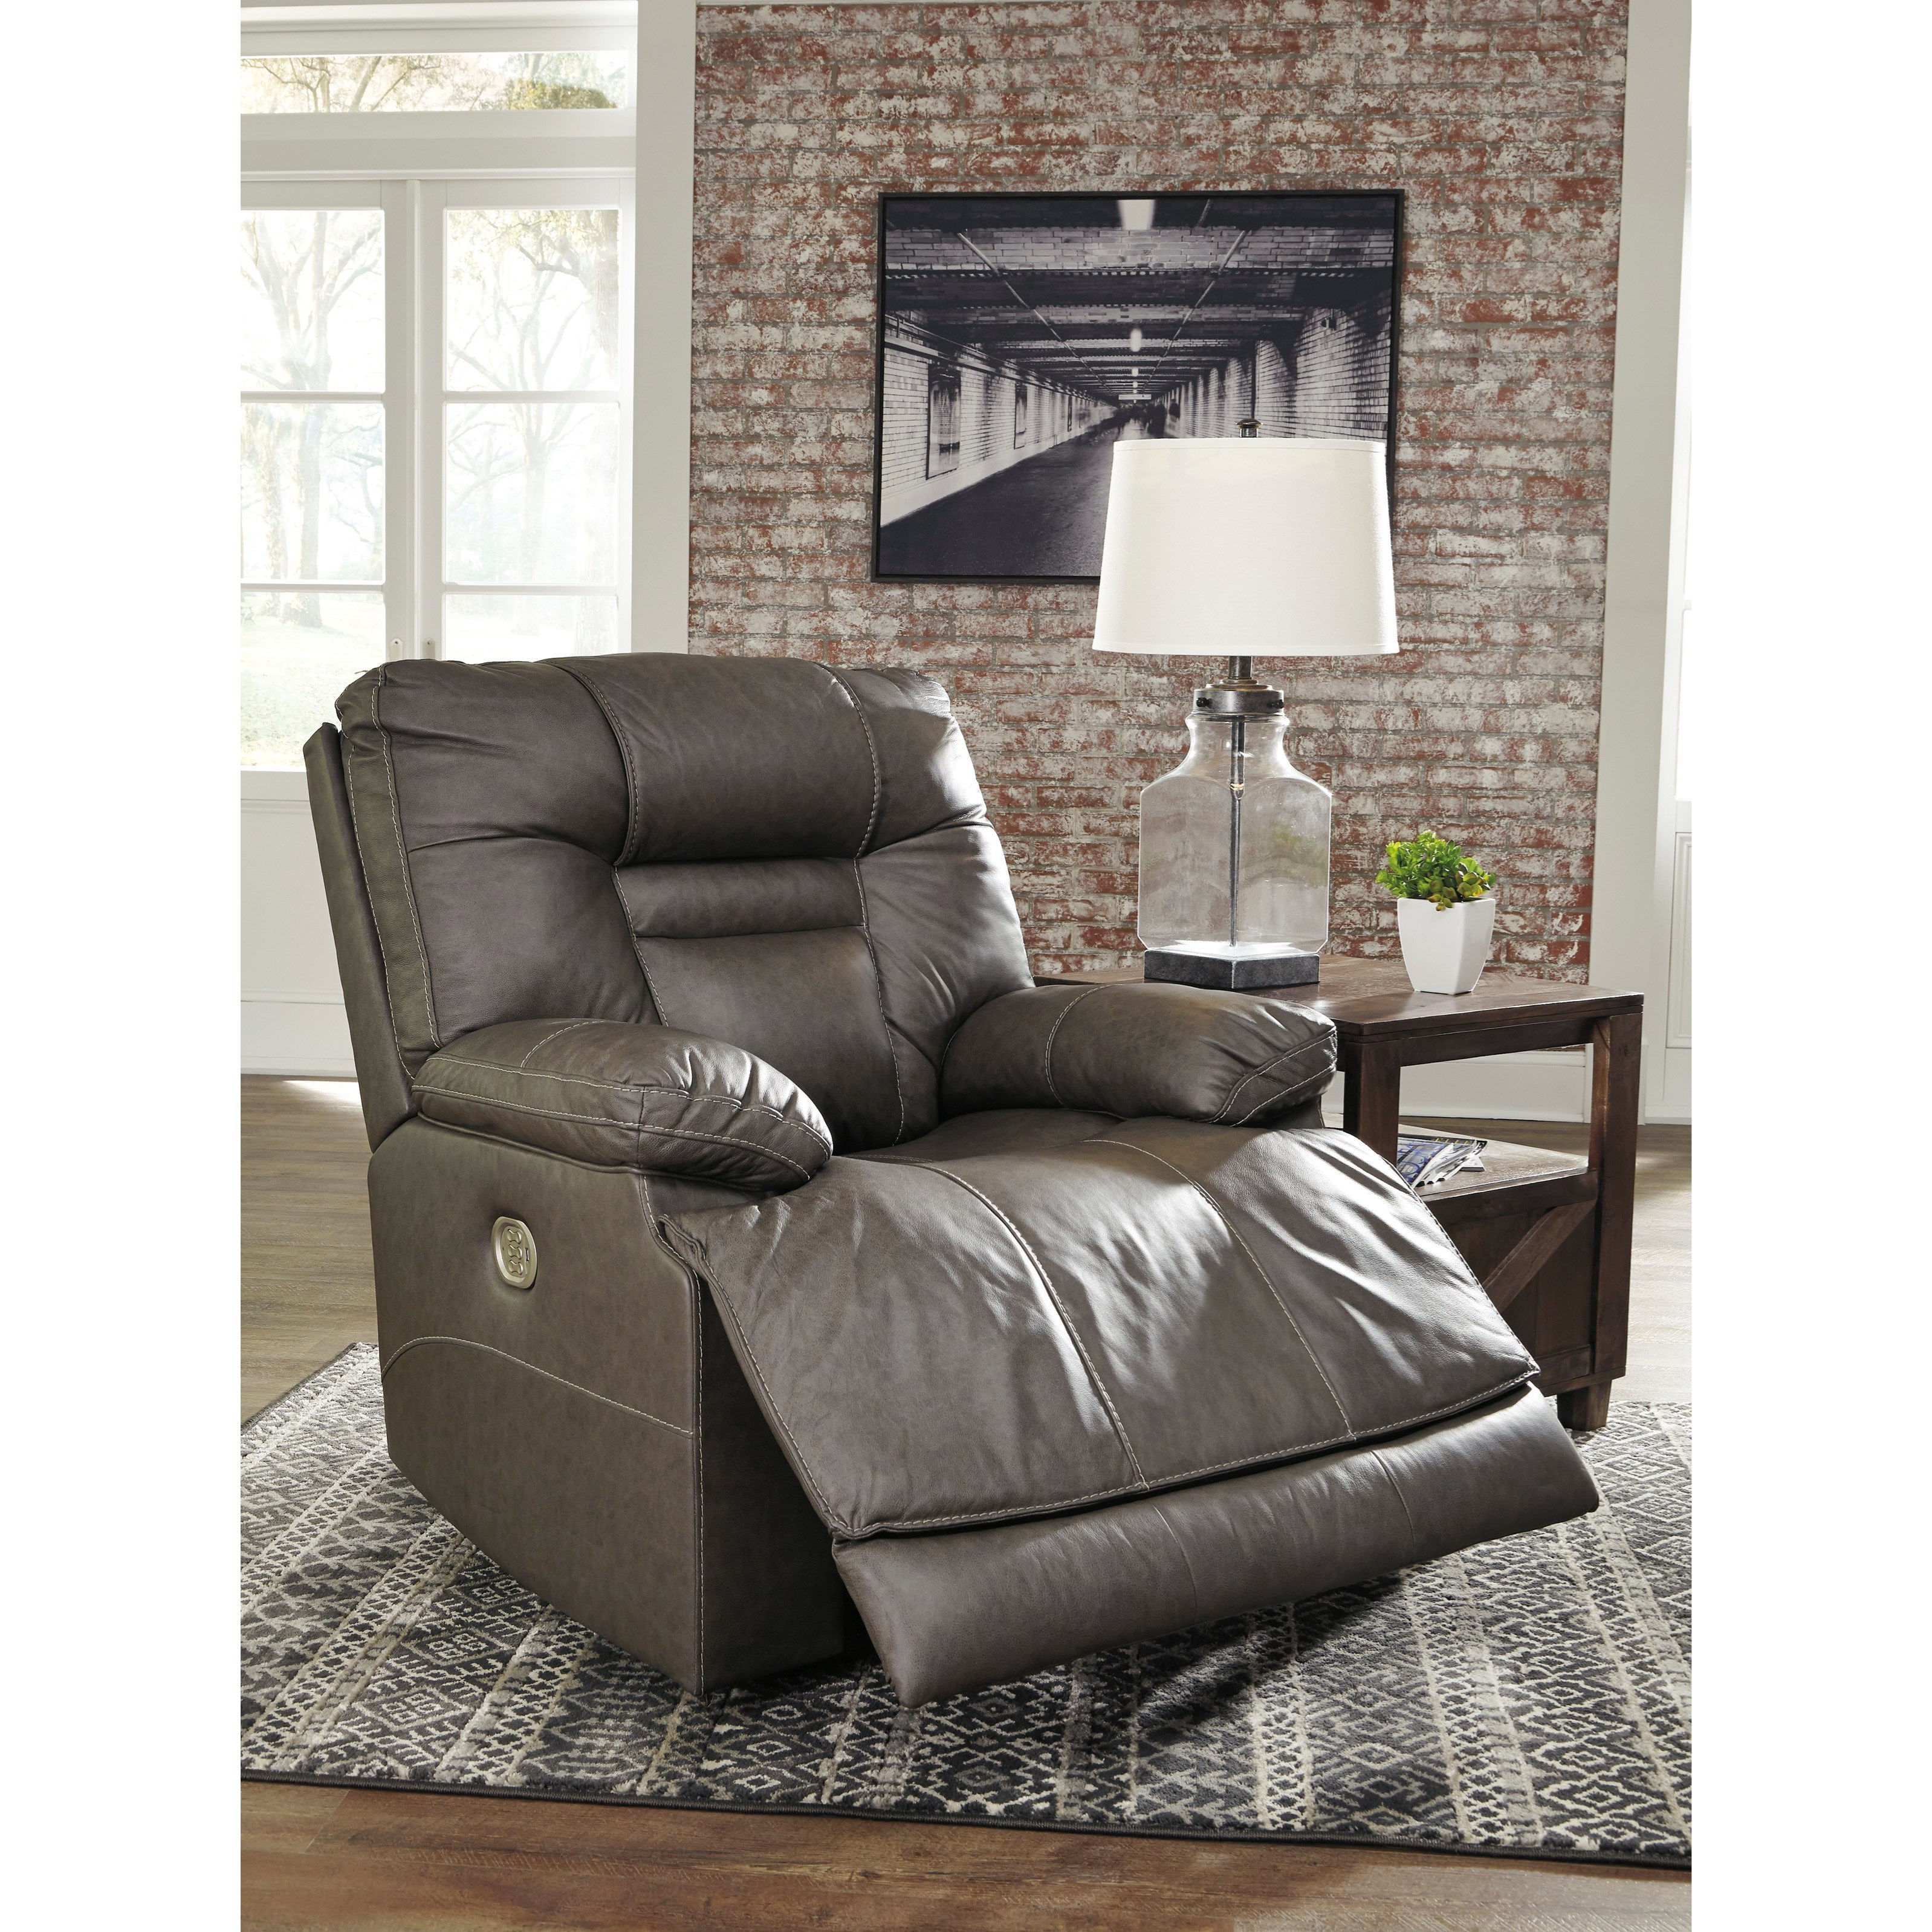 Signature Design By Ashley Wurstrow Power Recliner With